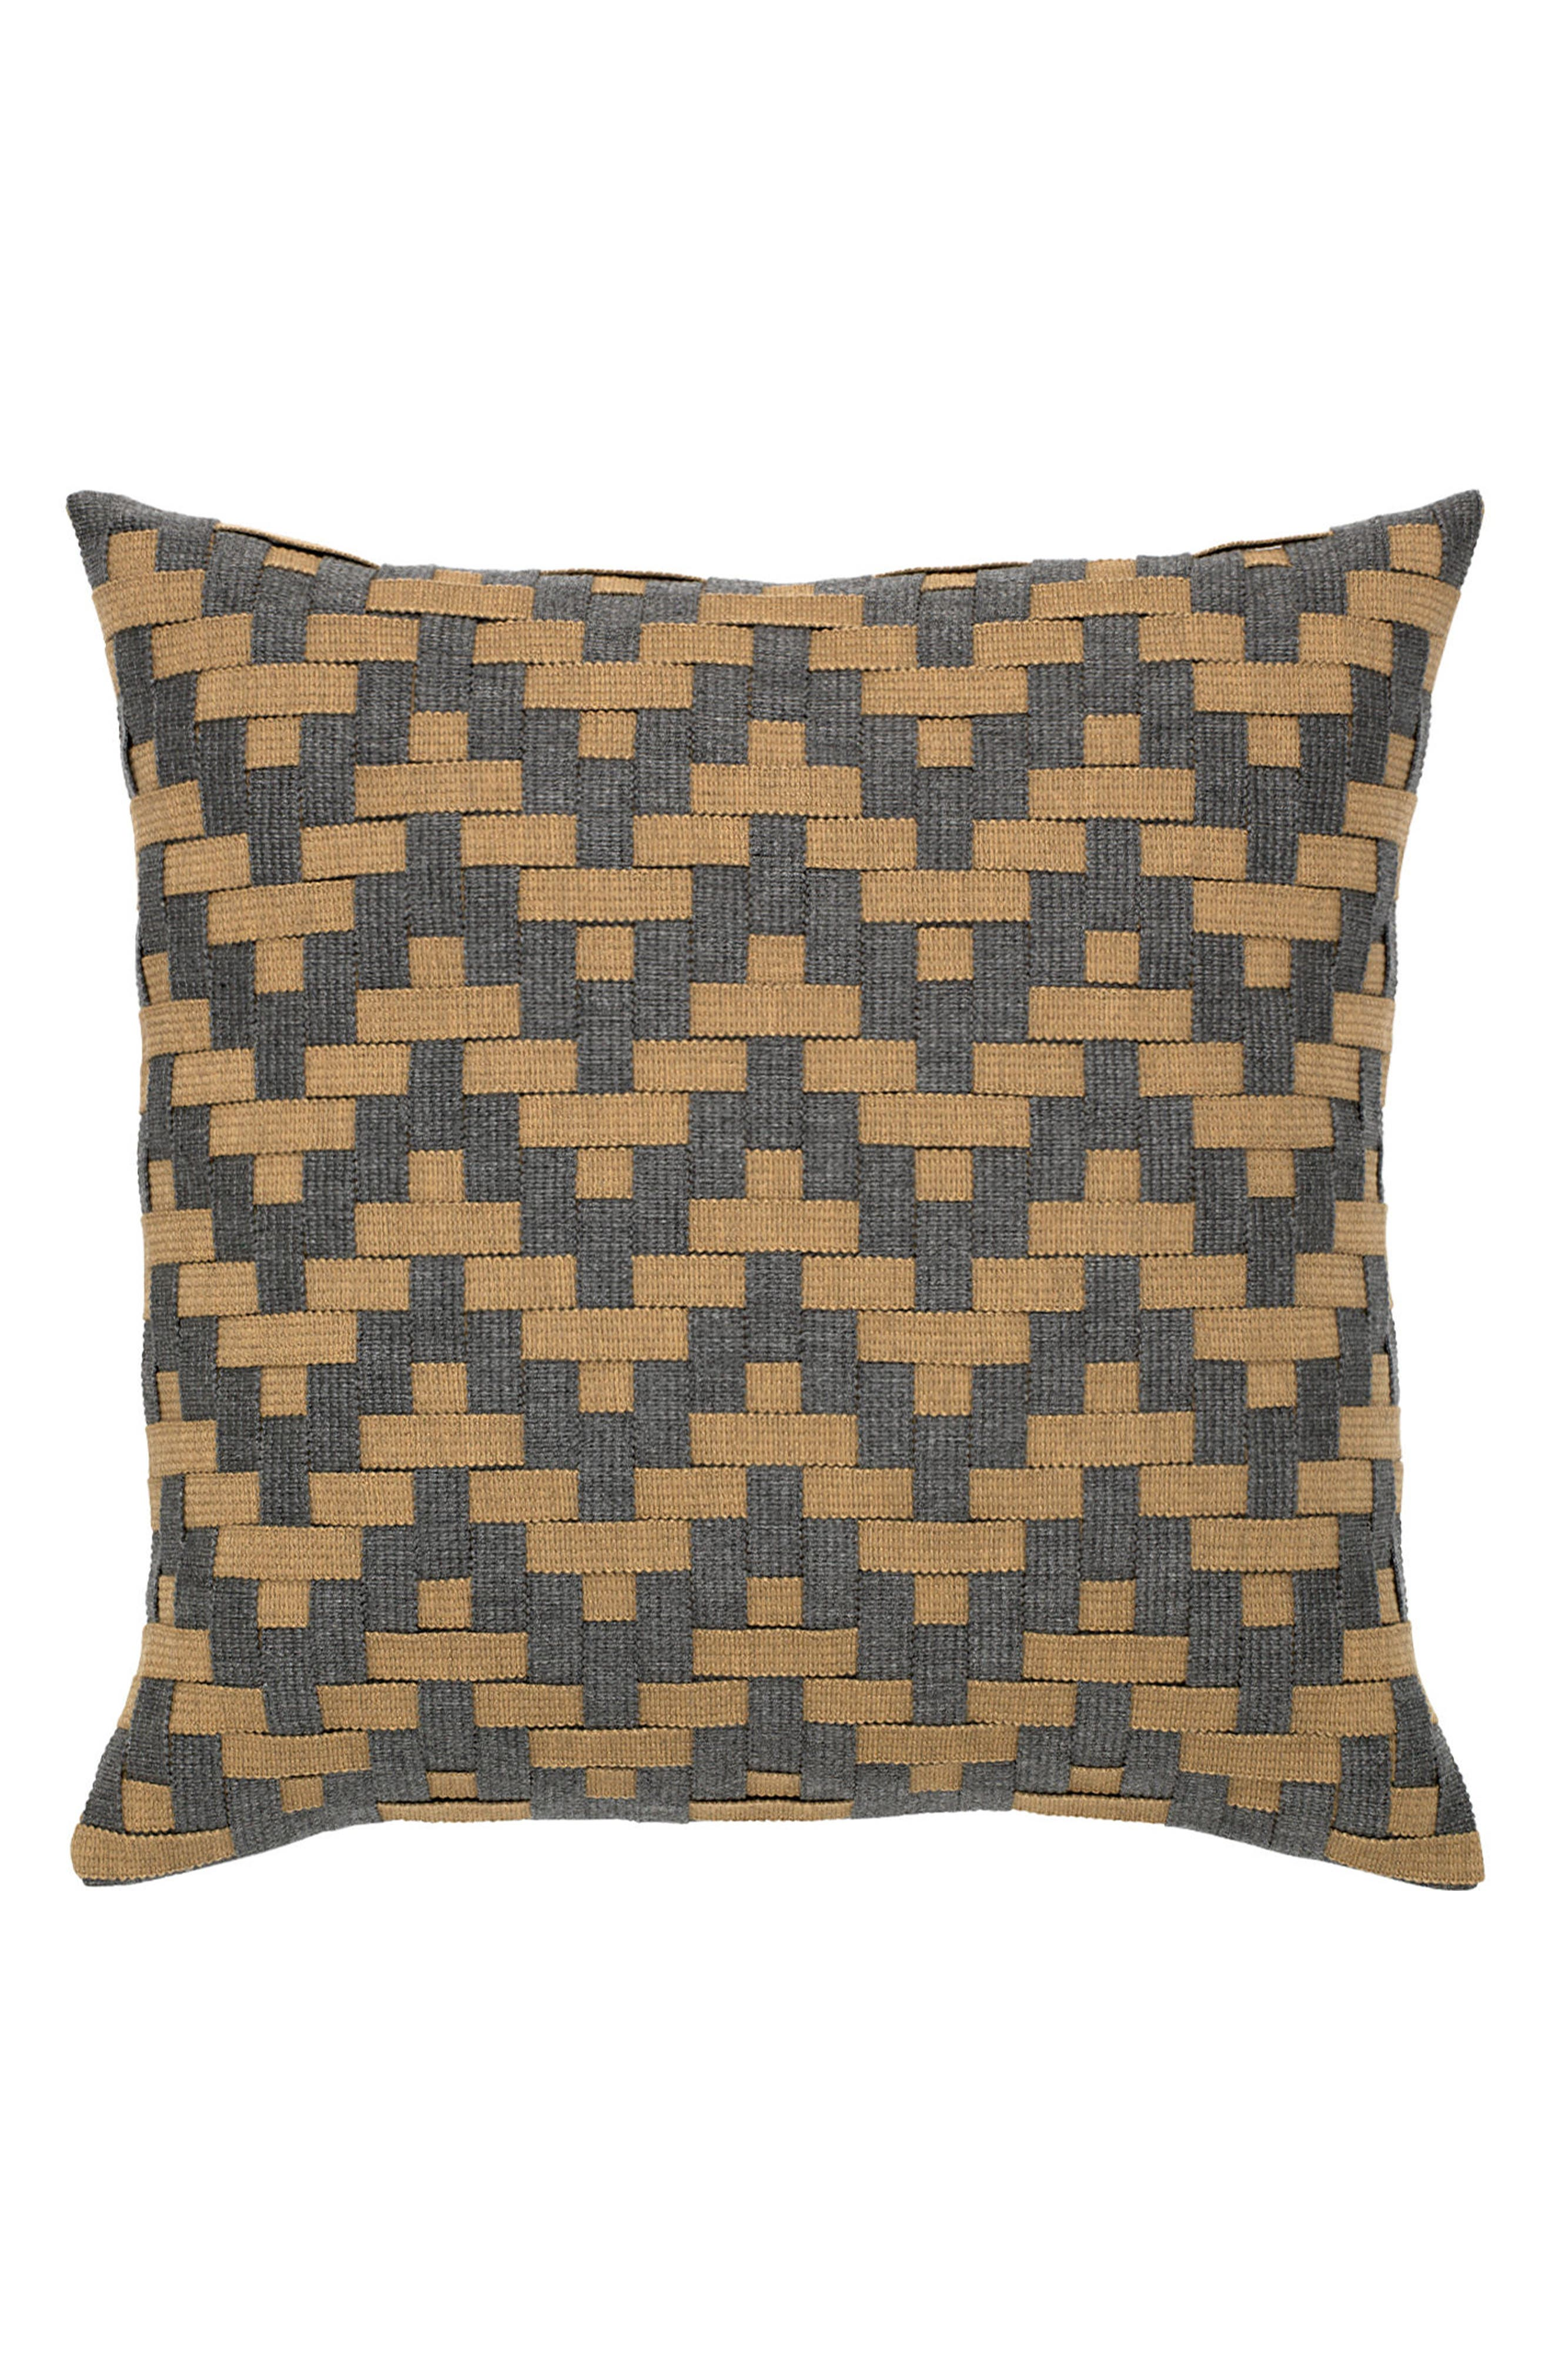 Smoke Basket Weave Indoor/Outdoor Accent Pillow,                             Main thumbnail 1, color,                             BROWN/ GREY